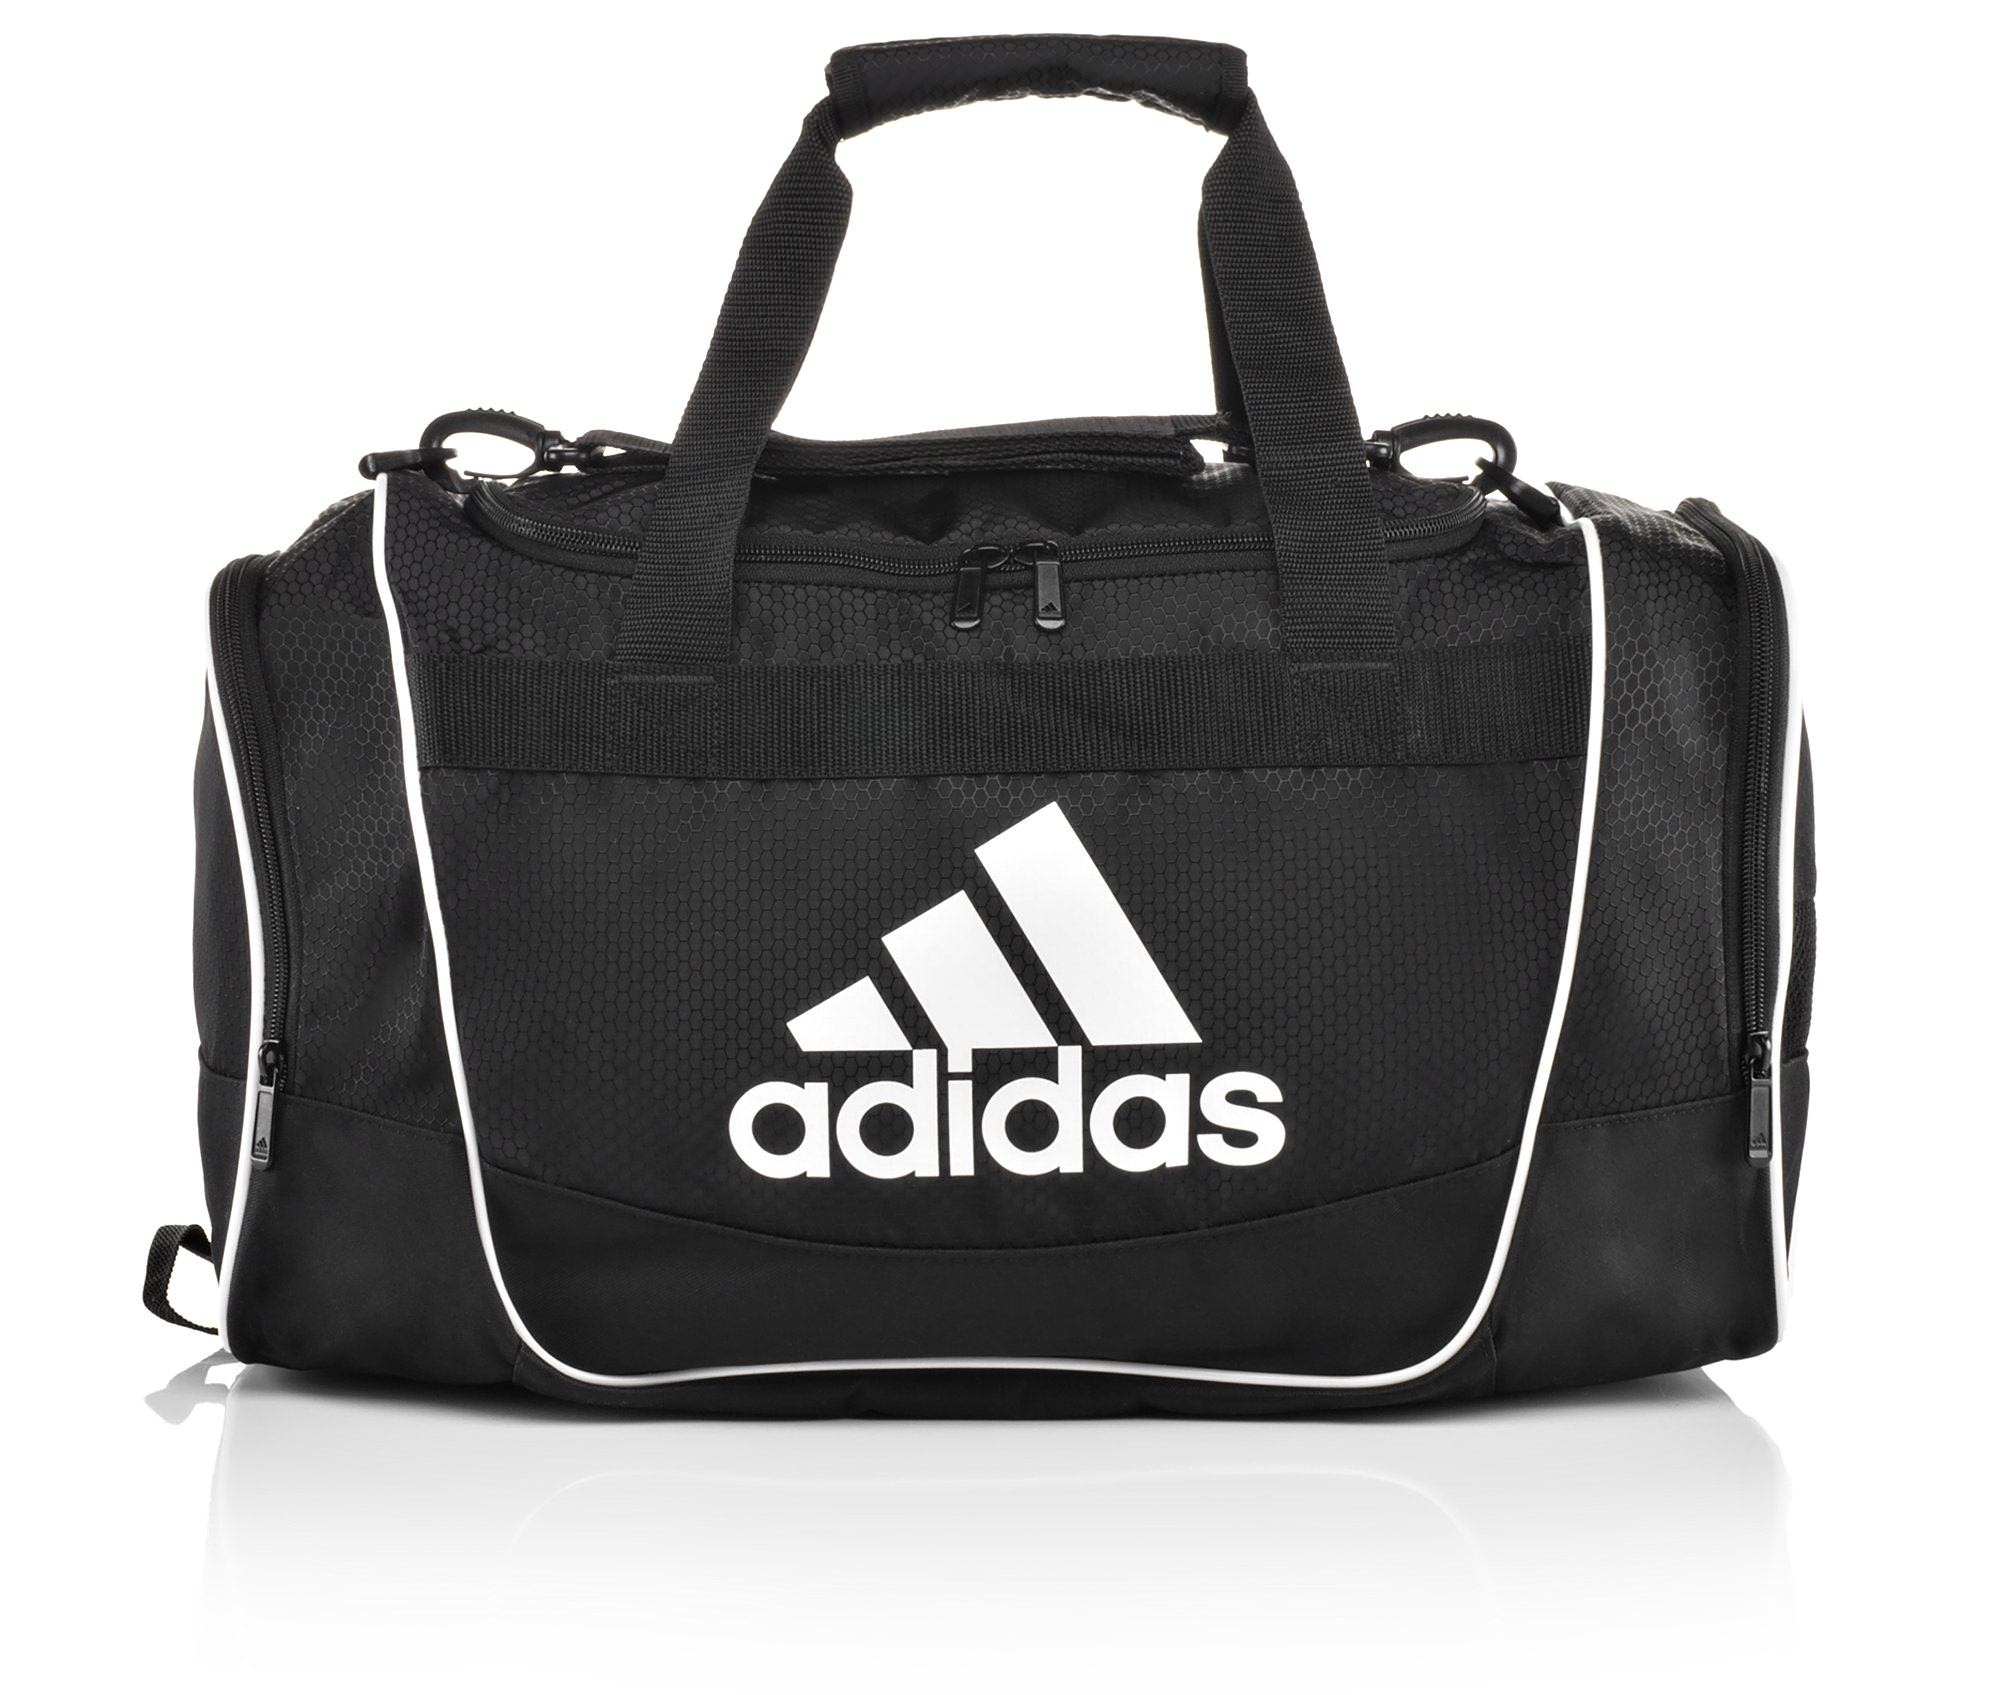 Image of Women's Adidas Defender Small Duffel Bag (Black - Size UNSZ)